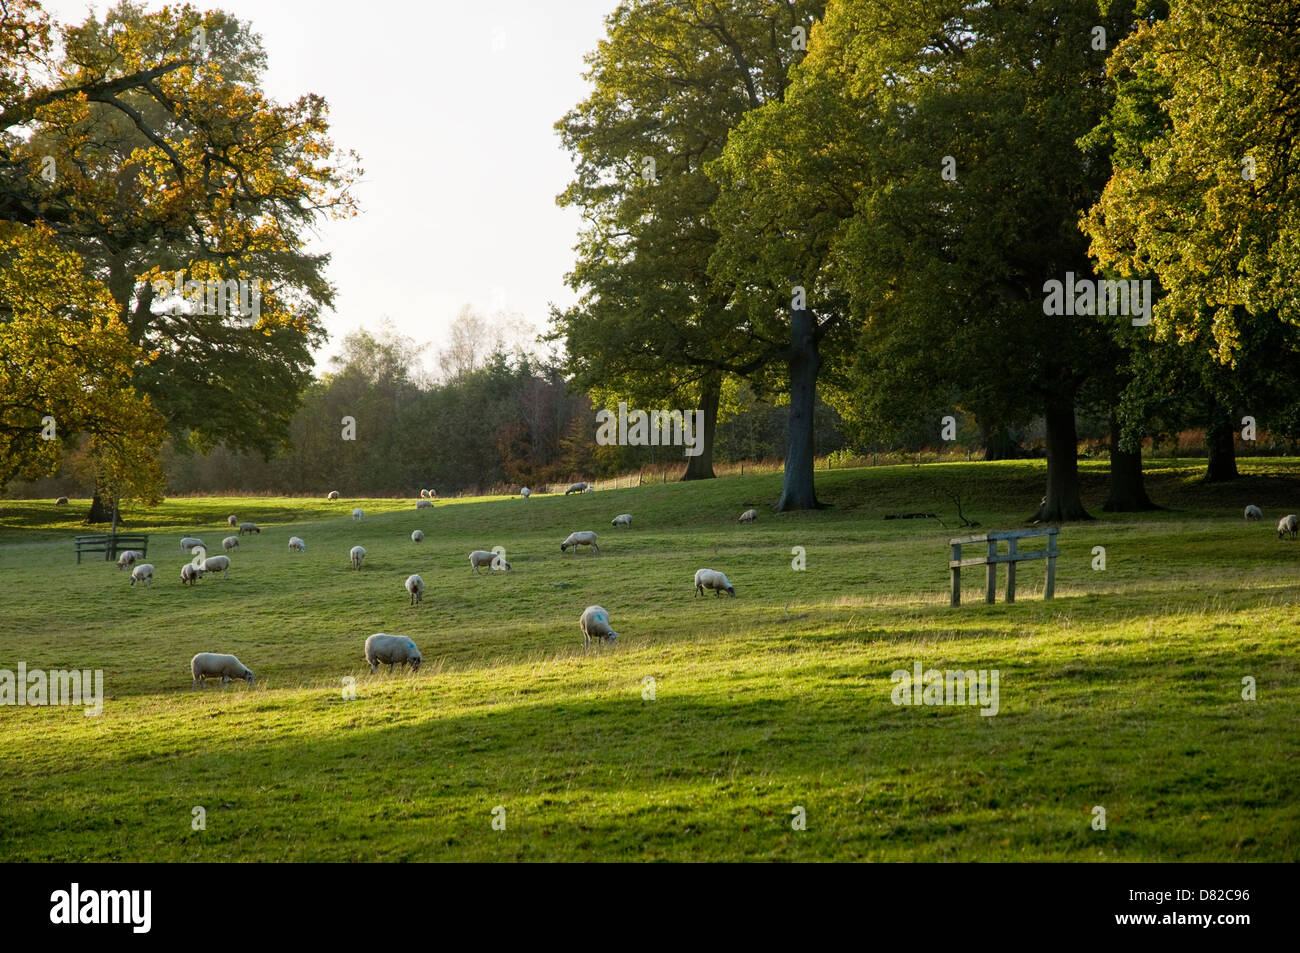 Sheep grazing in an English Landscape -  the light is fading at the end of the day - a pastoral scene.  UK - Stock Image